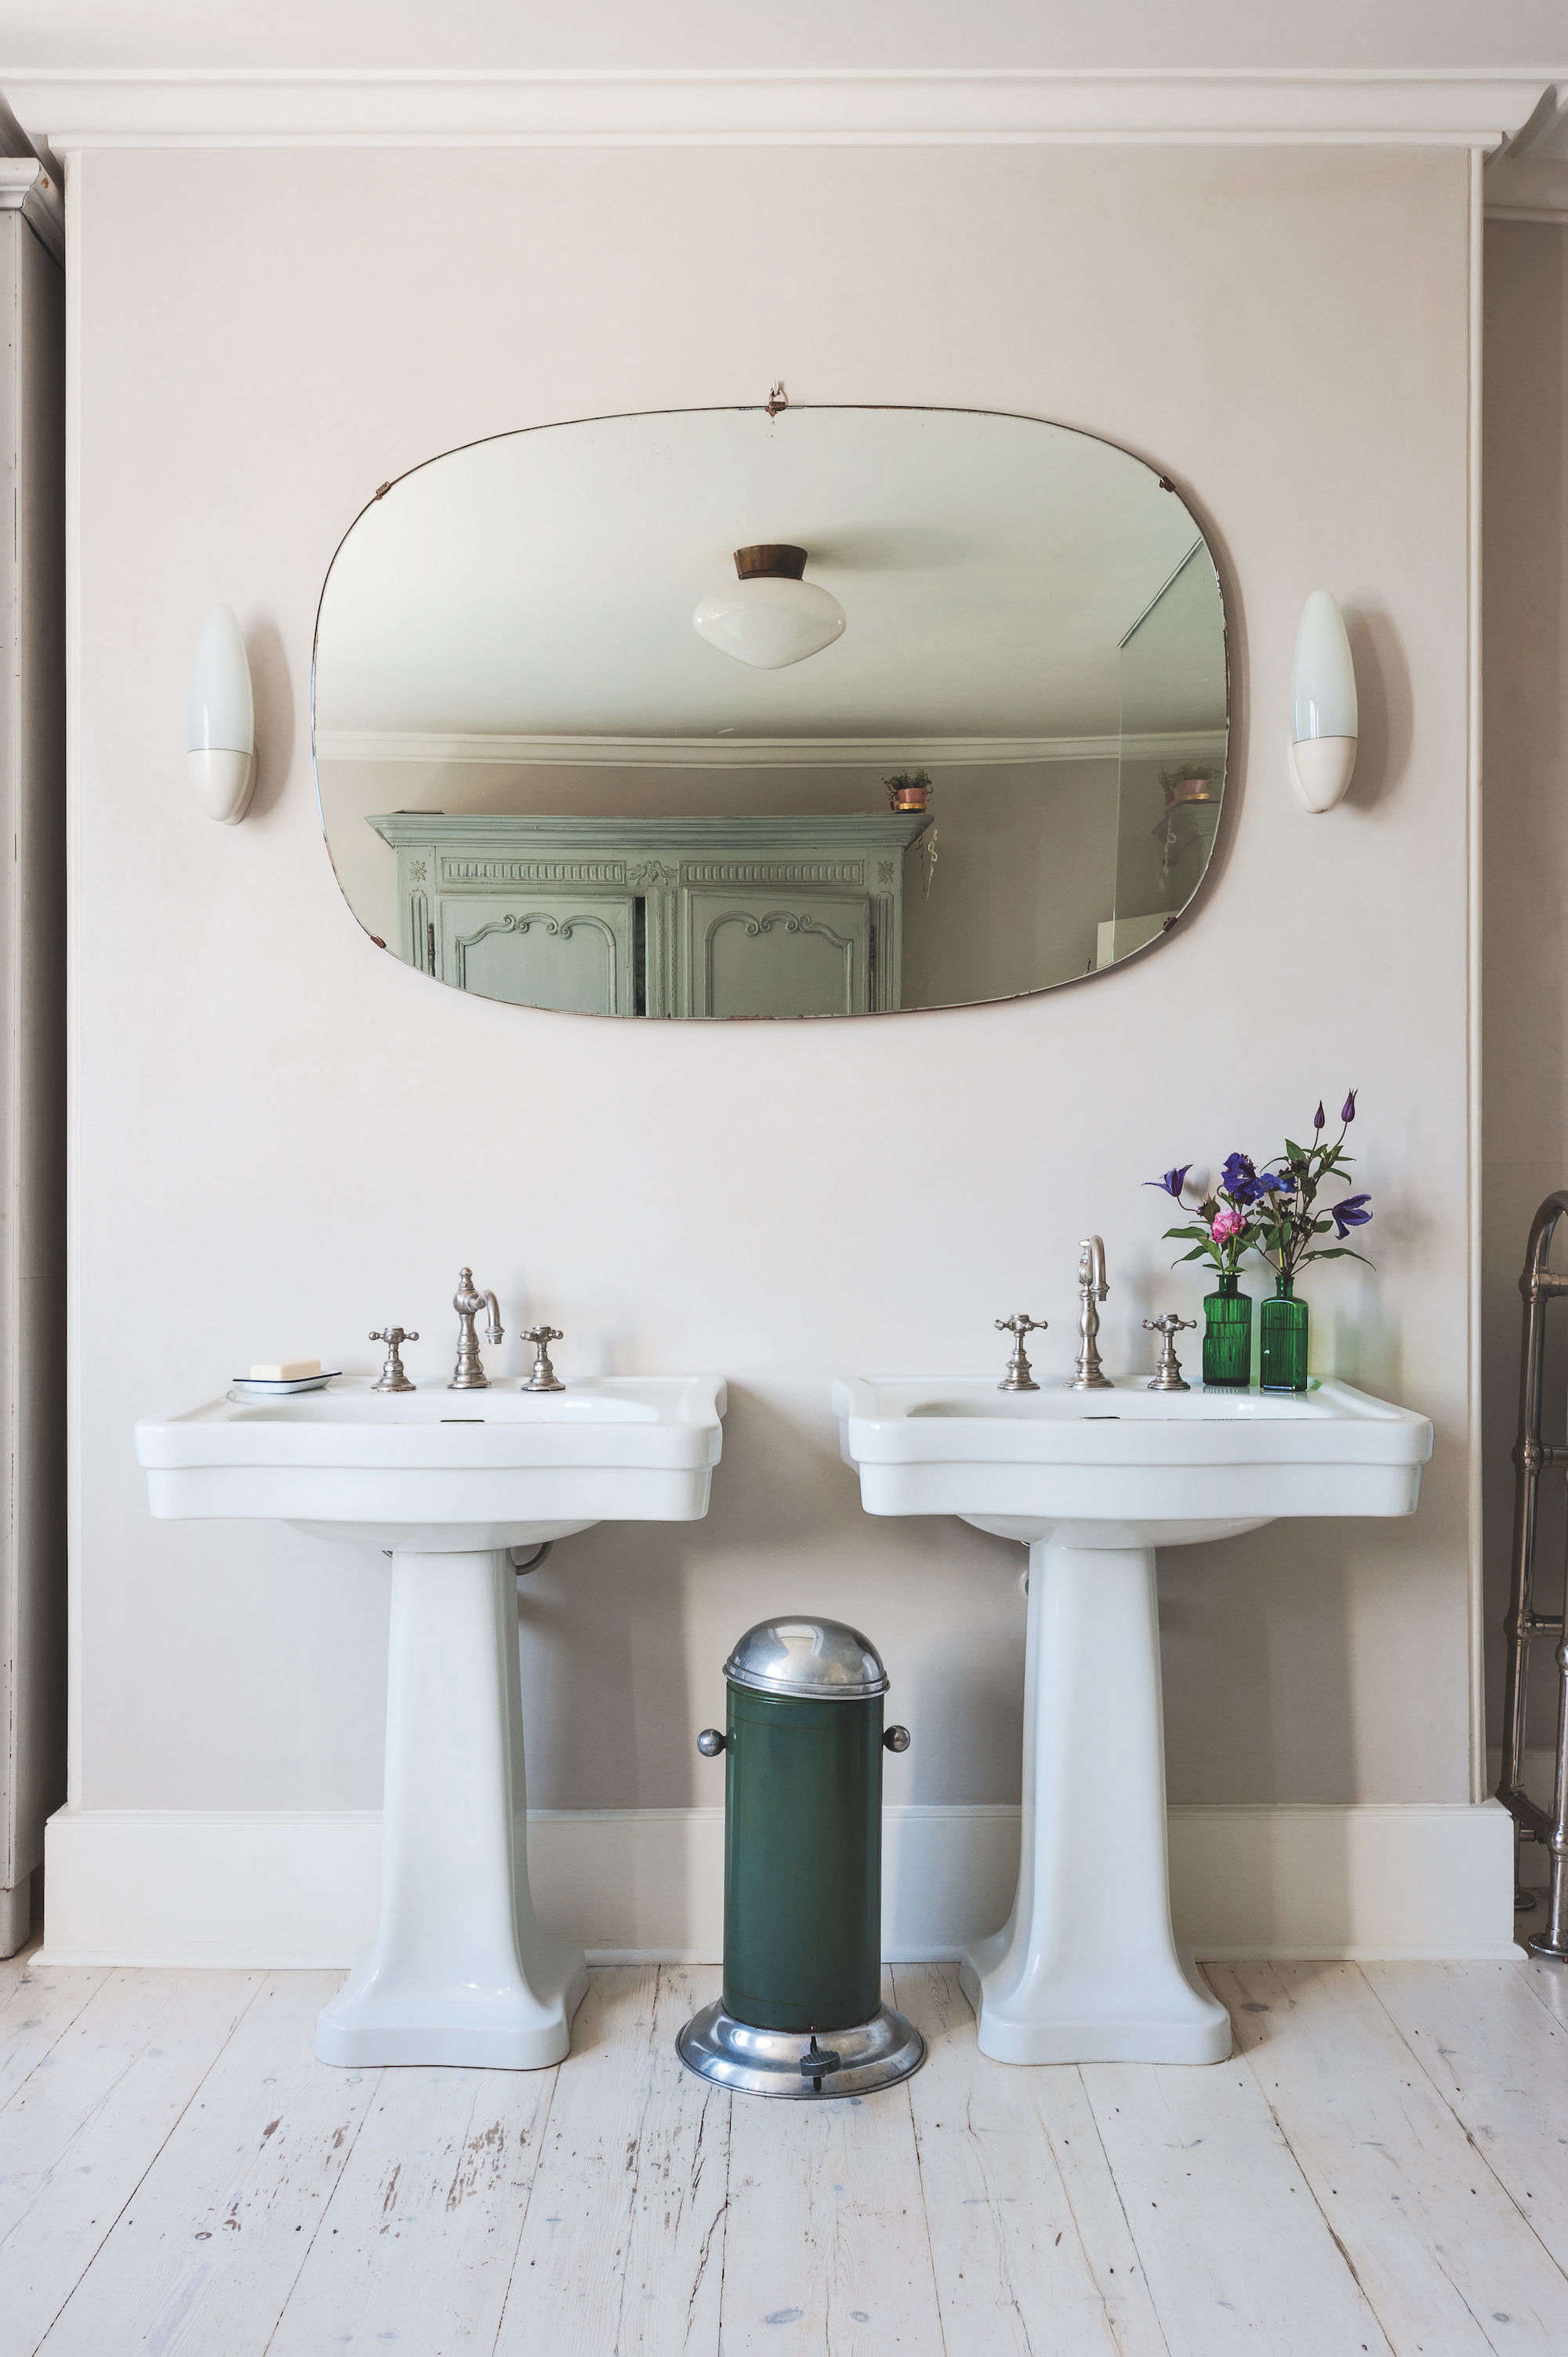 Inspirational dual pedestal sinks green trash can round mirror